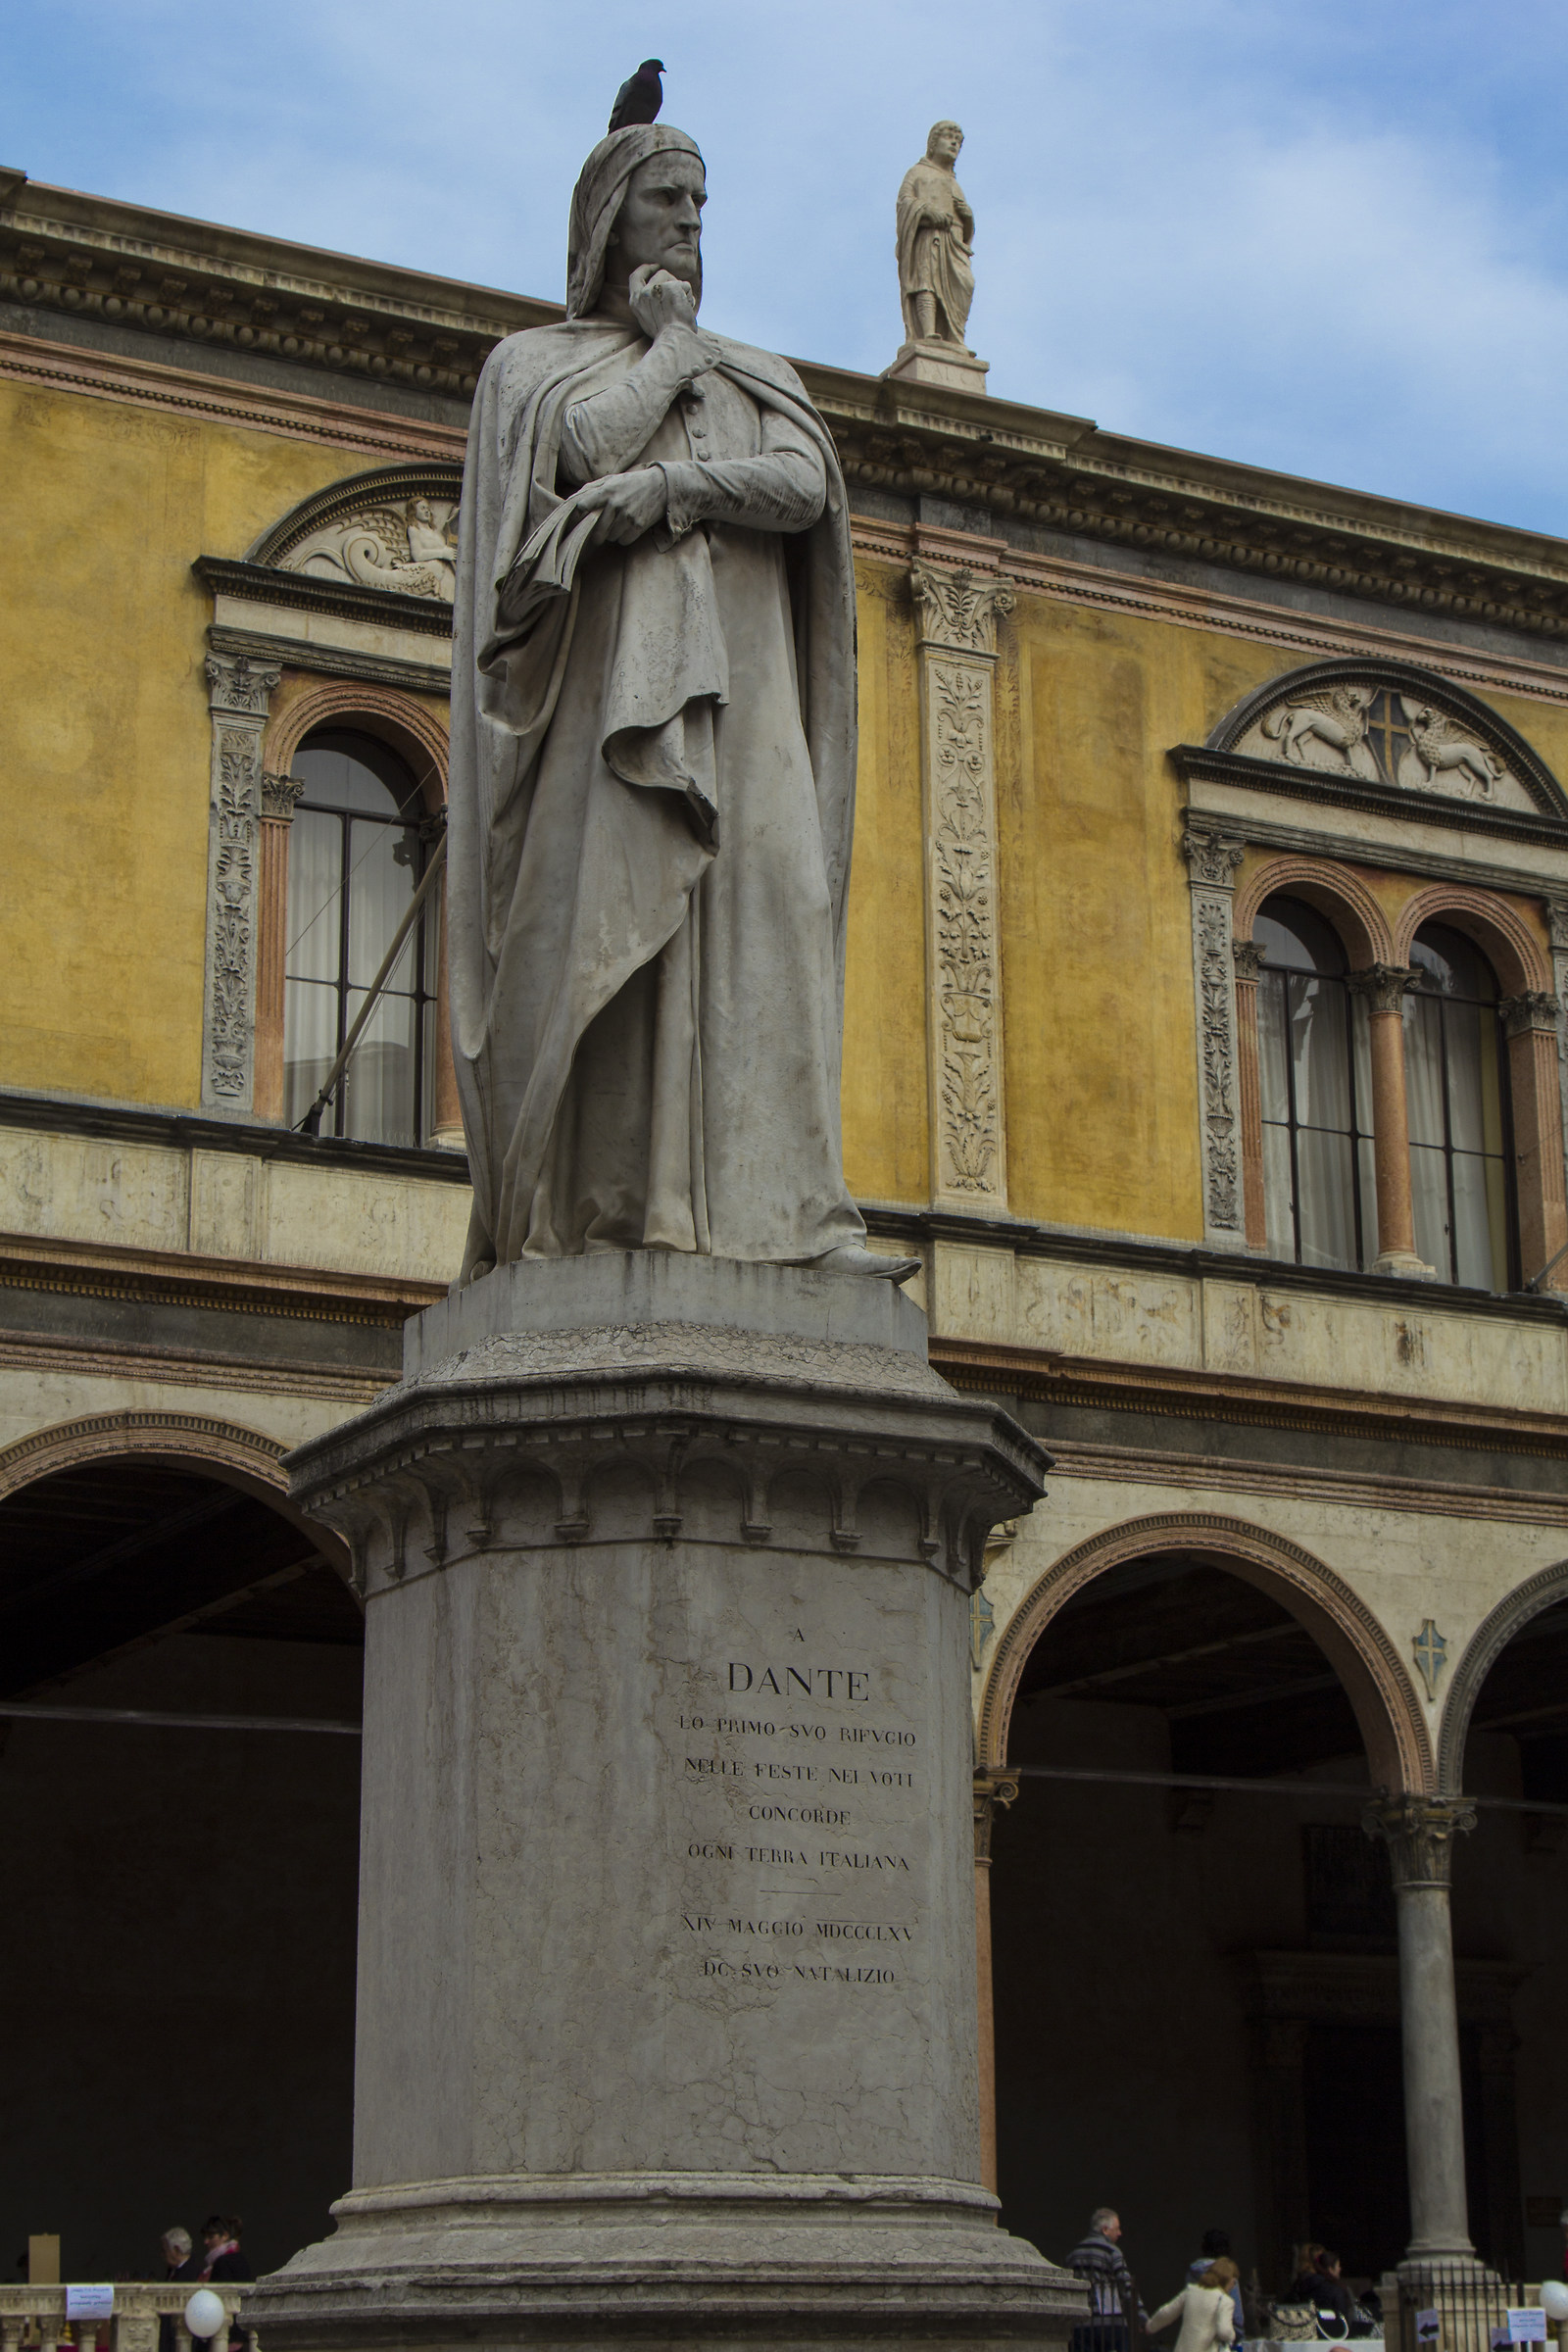 Dante and the pigeon...